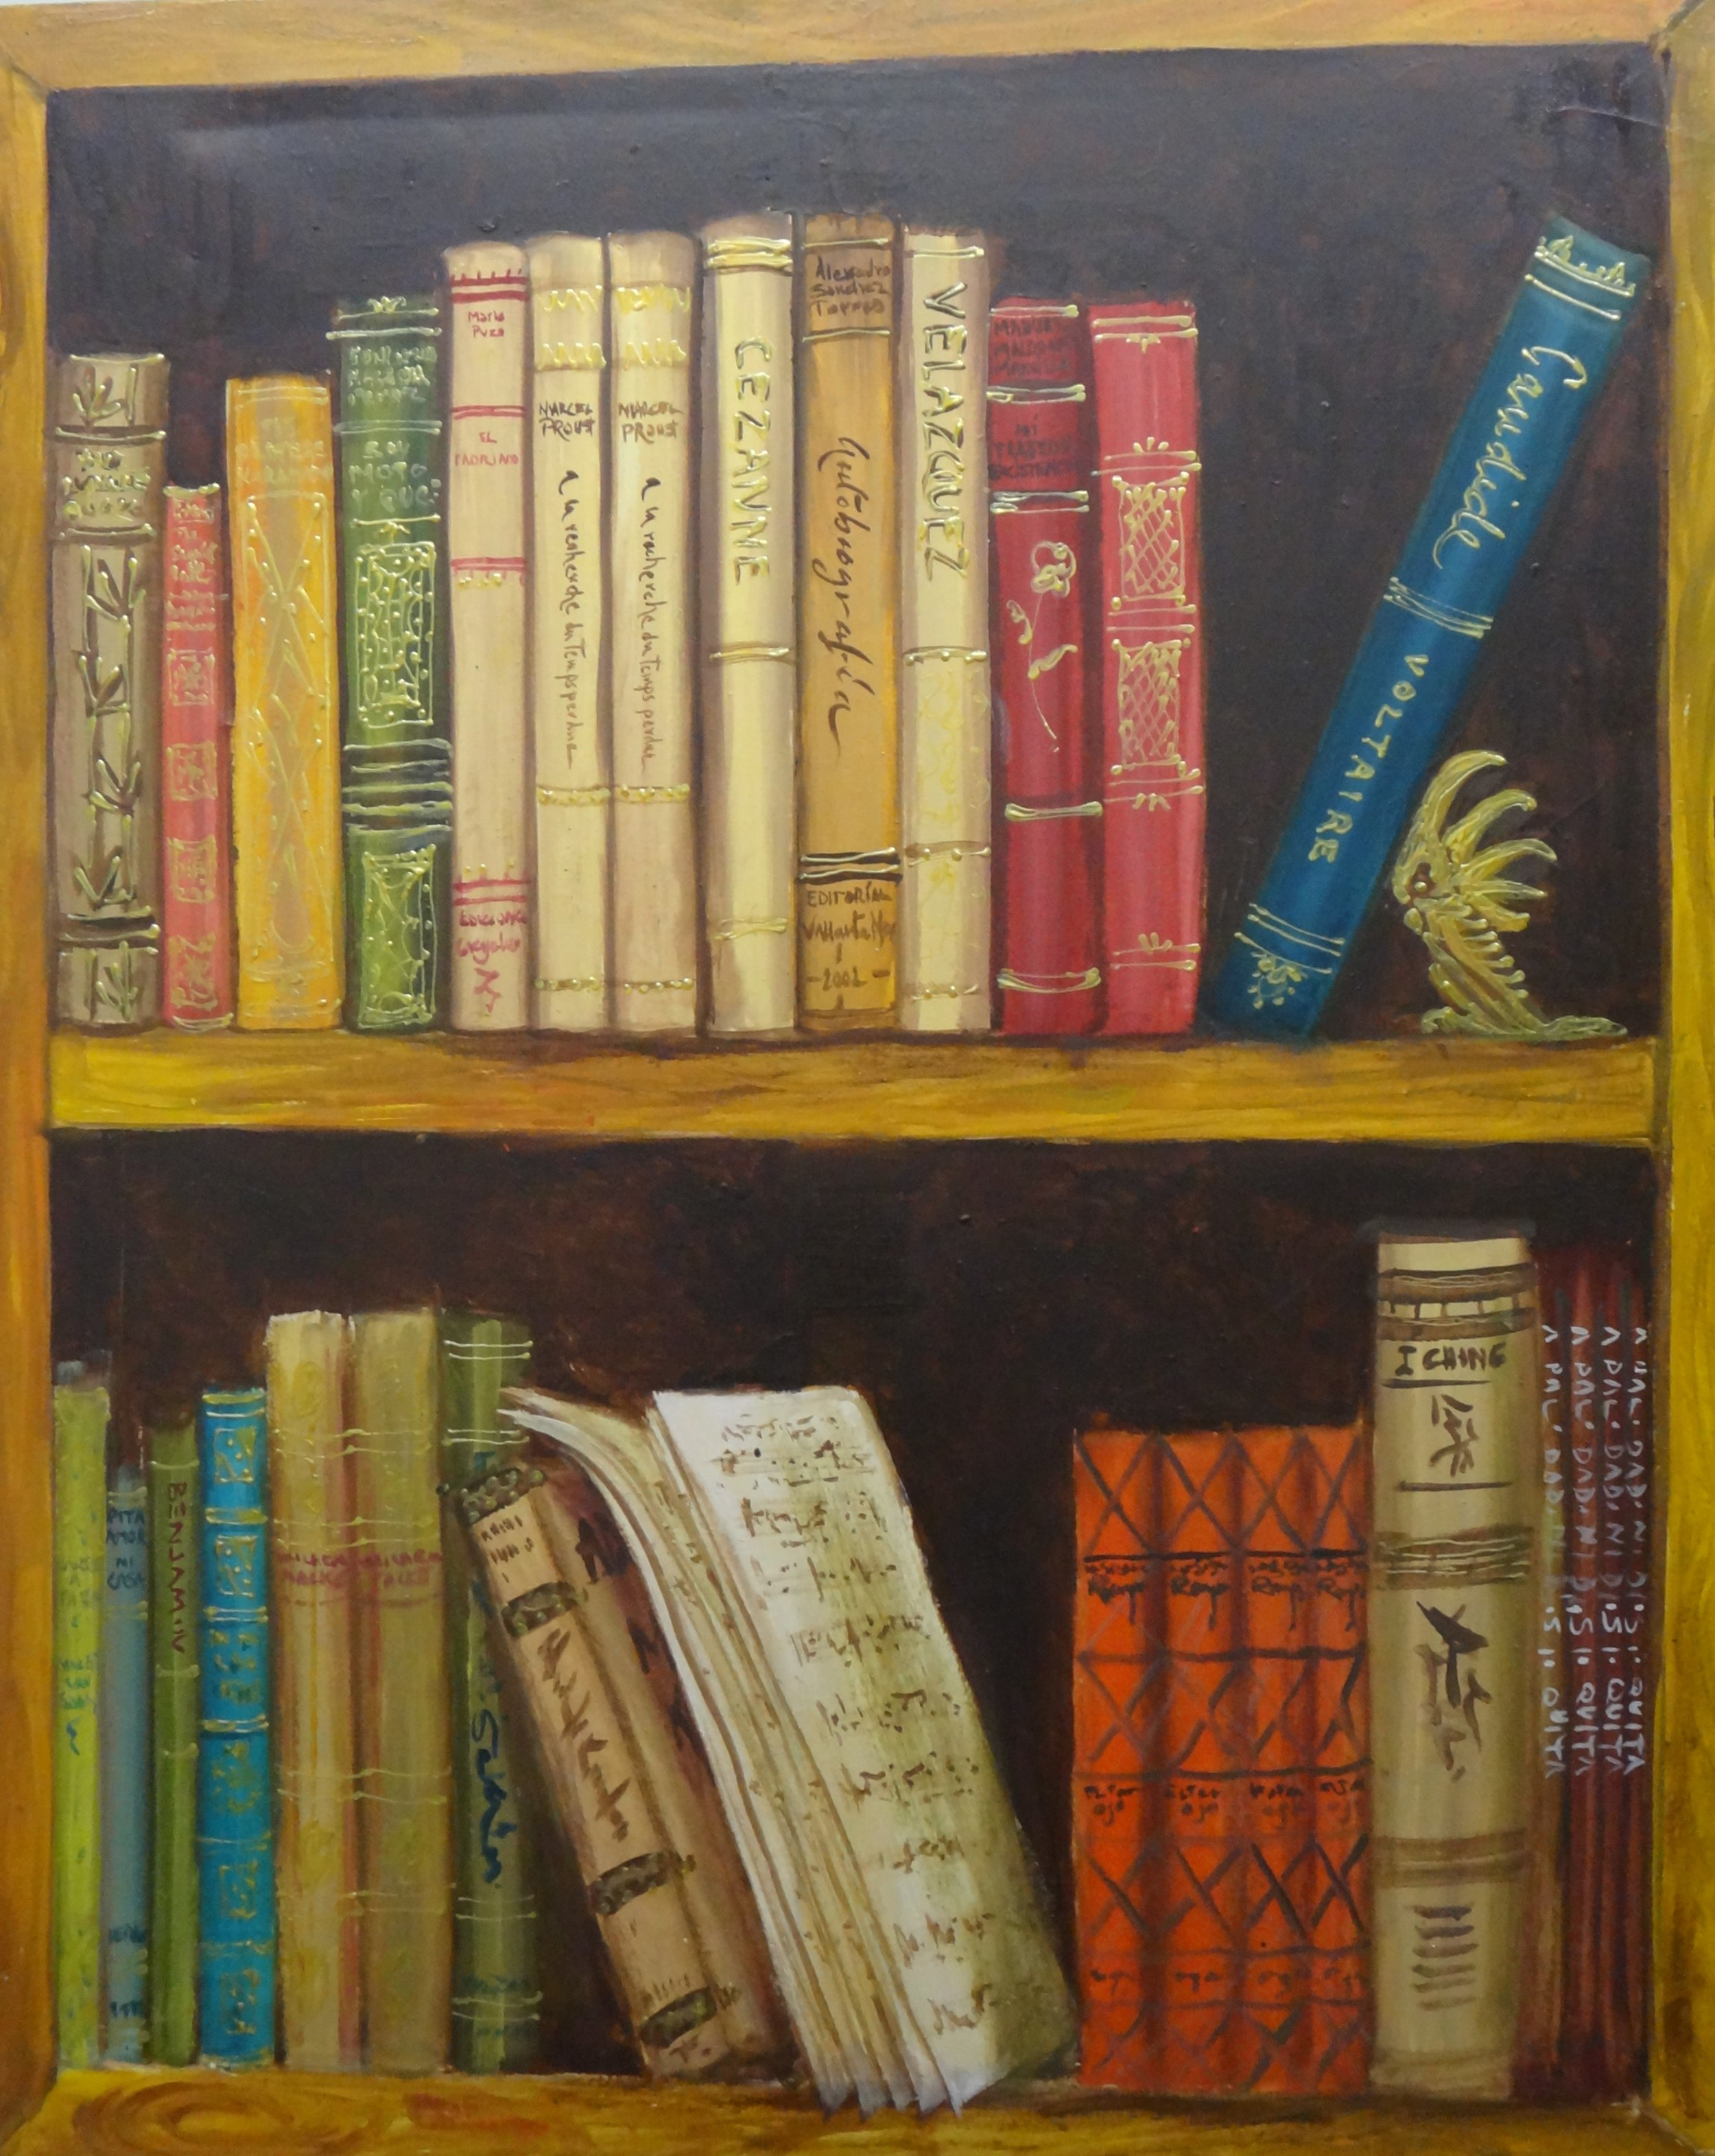 "Title: The Library  Artist:  Alex Sanchez Torres   Medium: Oil on Canvas  Dimensions: 39"" x 31""  Framed: No  Price: Contact for Inquiry"